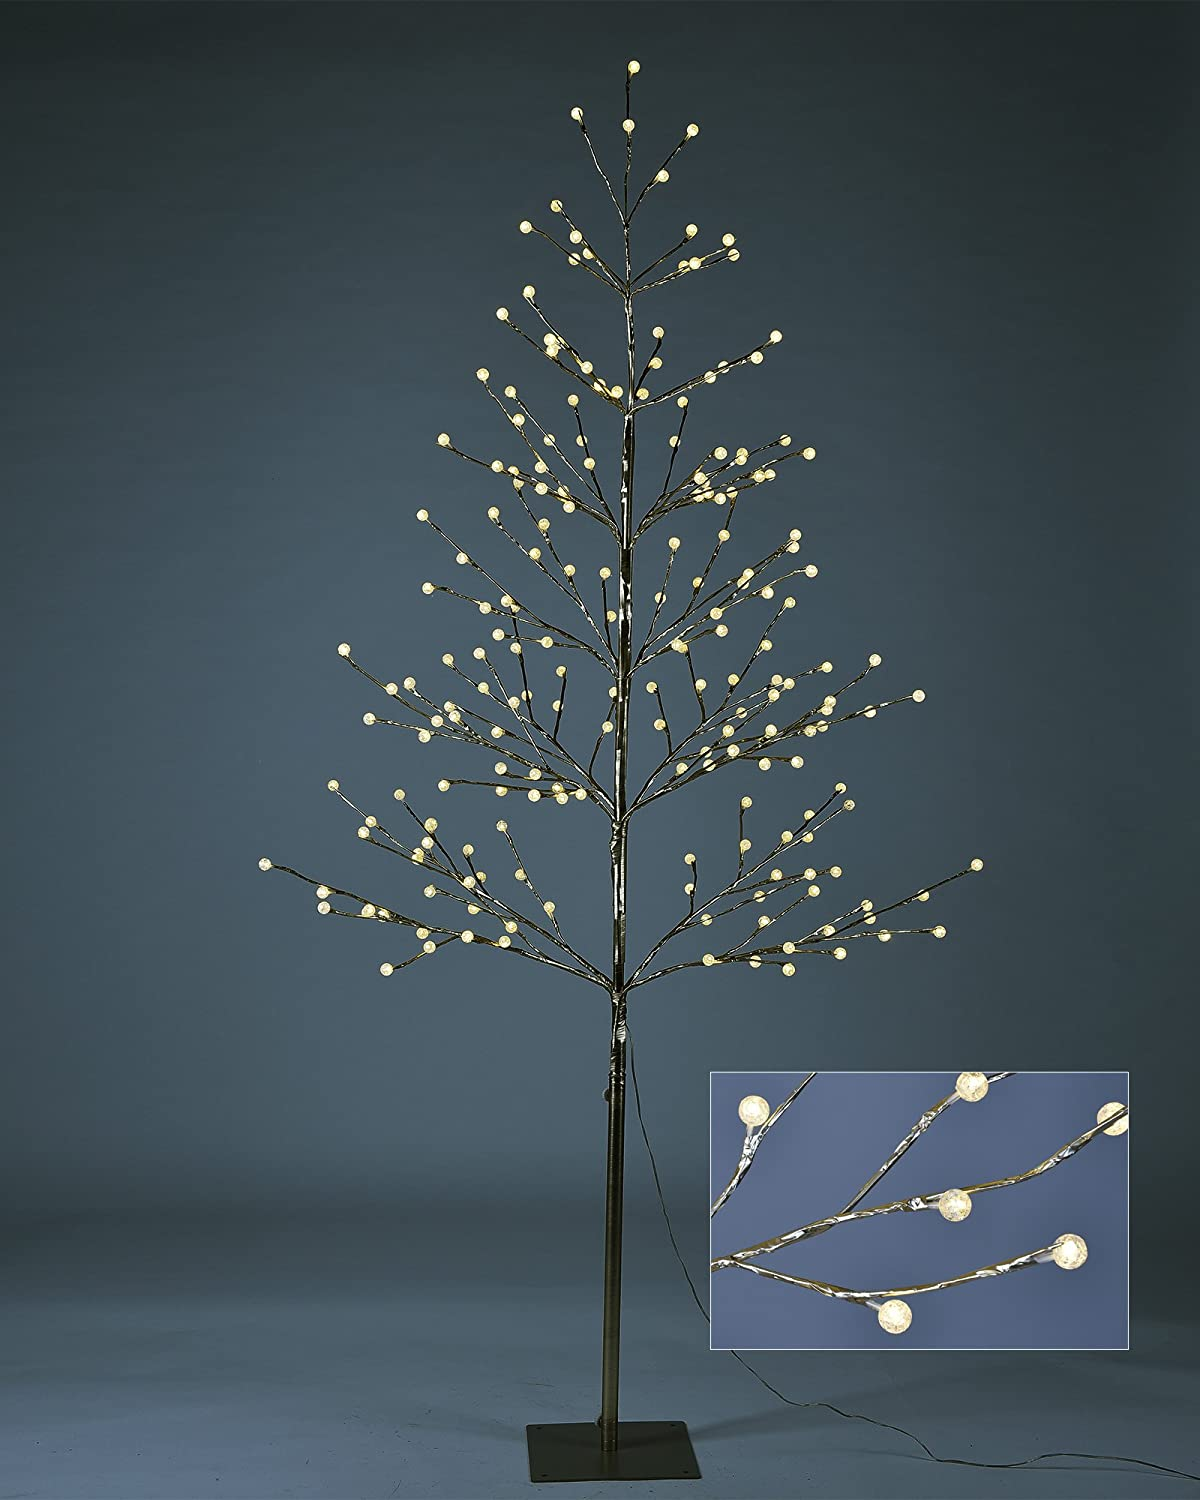 LIGHTSHARE 6 ft. LED Tree - Northern Lights Pre-lit Tree with 198 LED Lights, 6 Feet, Golden Finish, Champagne Gold, Warm White Lights, Starlit Snowballs, Iceball Decor, Ideal for Holiday Decoration